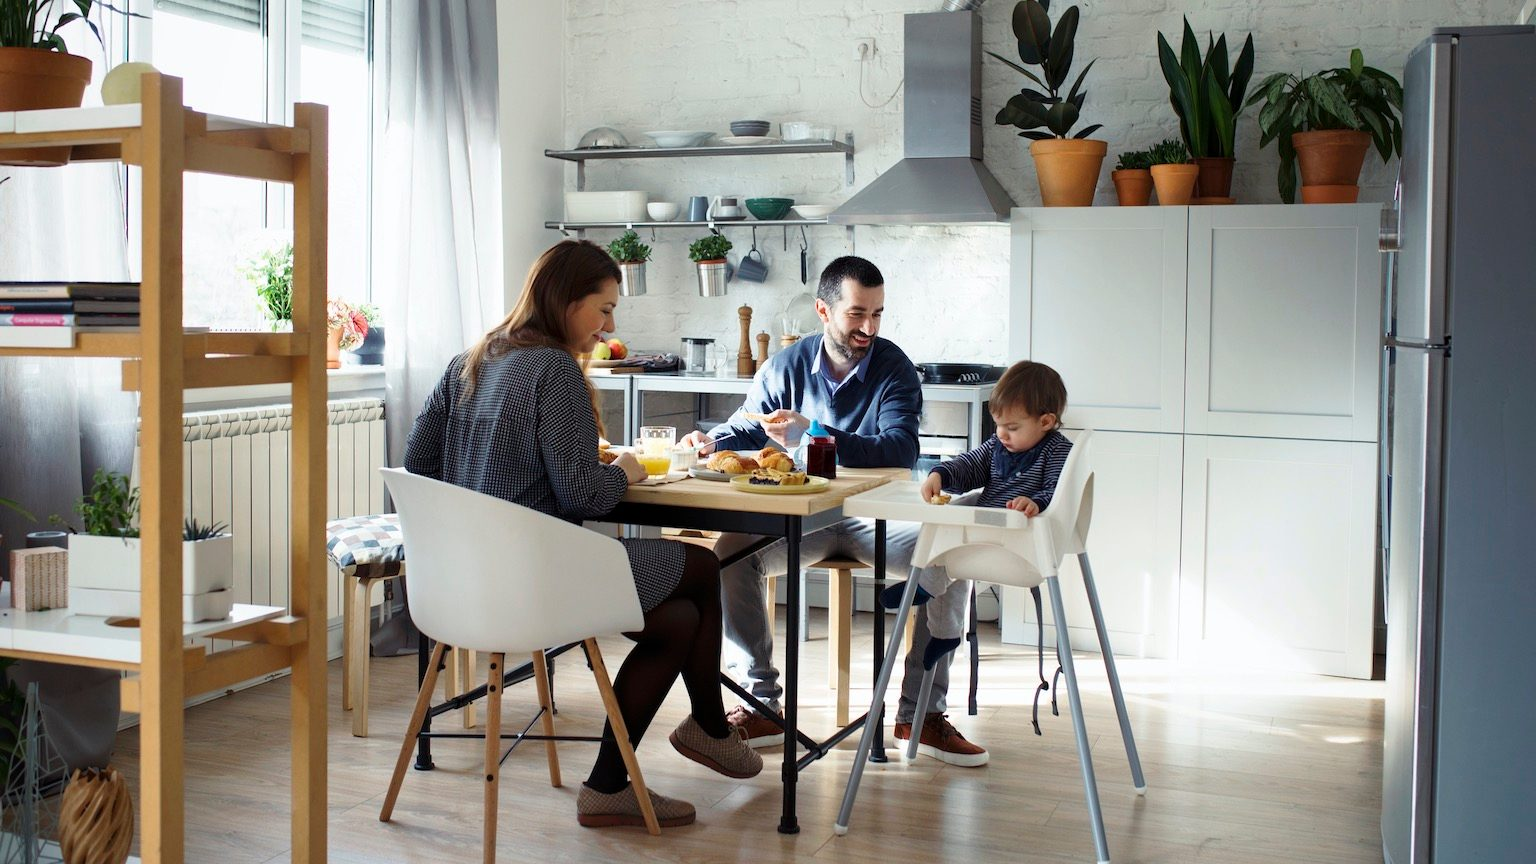 Parents looking at son sitting on high chair while having breakfast in kitchen